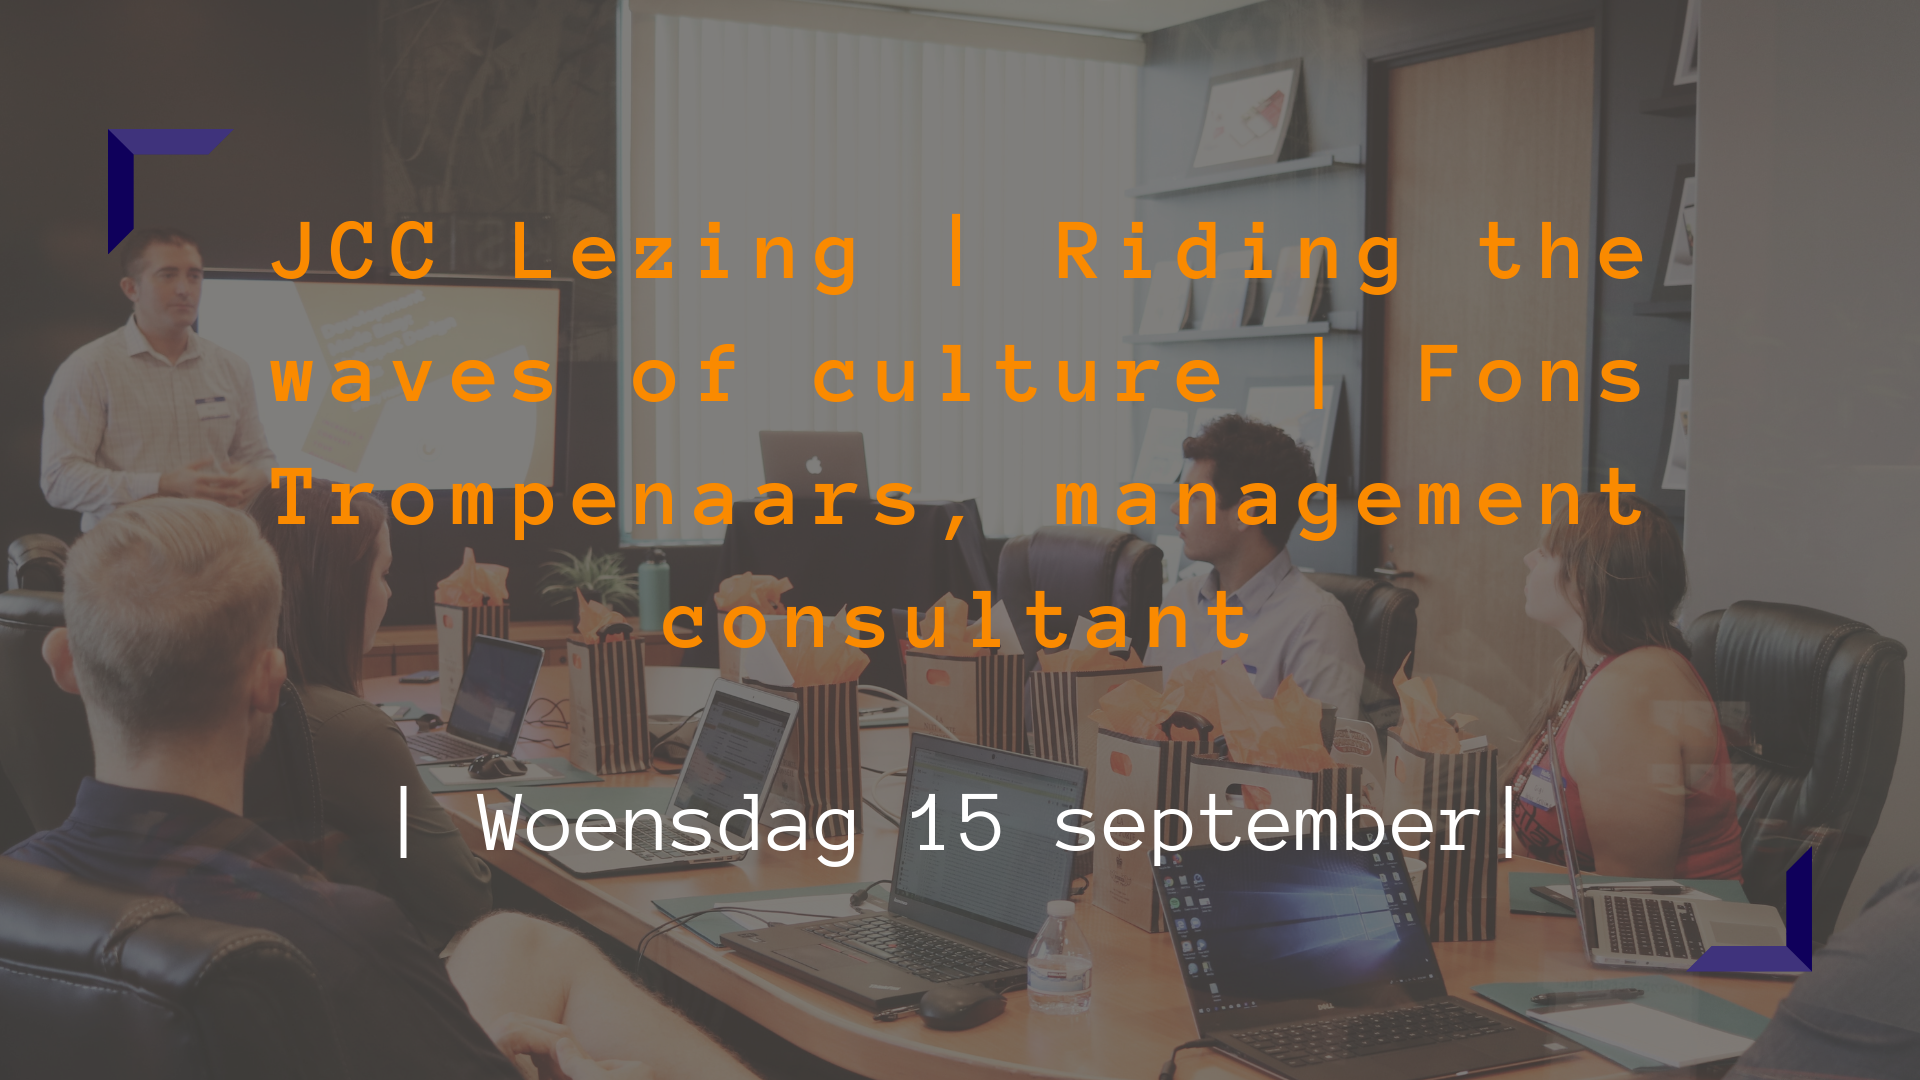 JCC lezing   Riding the waves of culture   Fons Trompenaars, management consultant